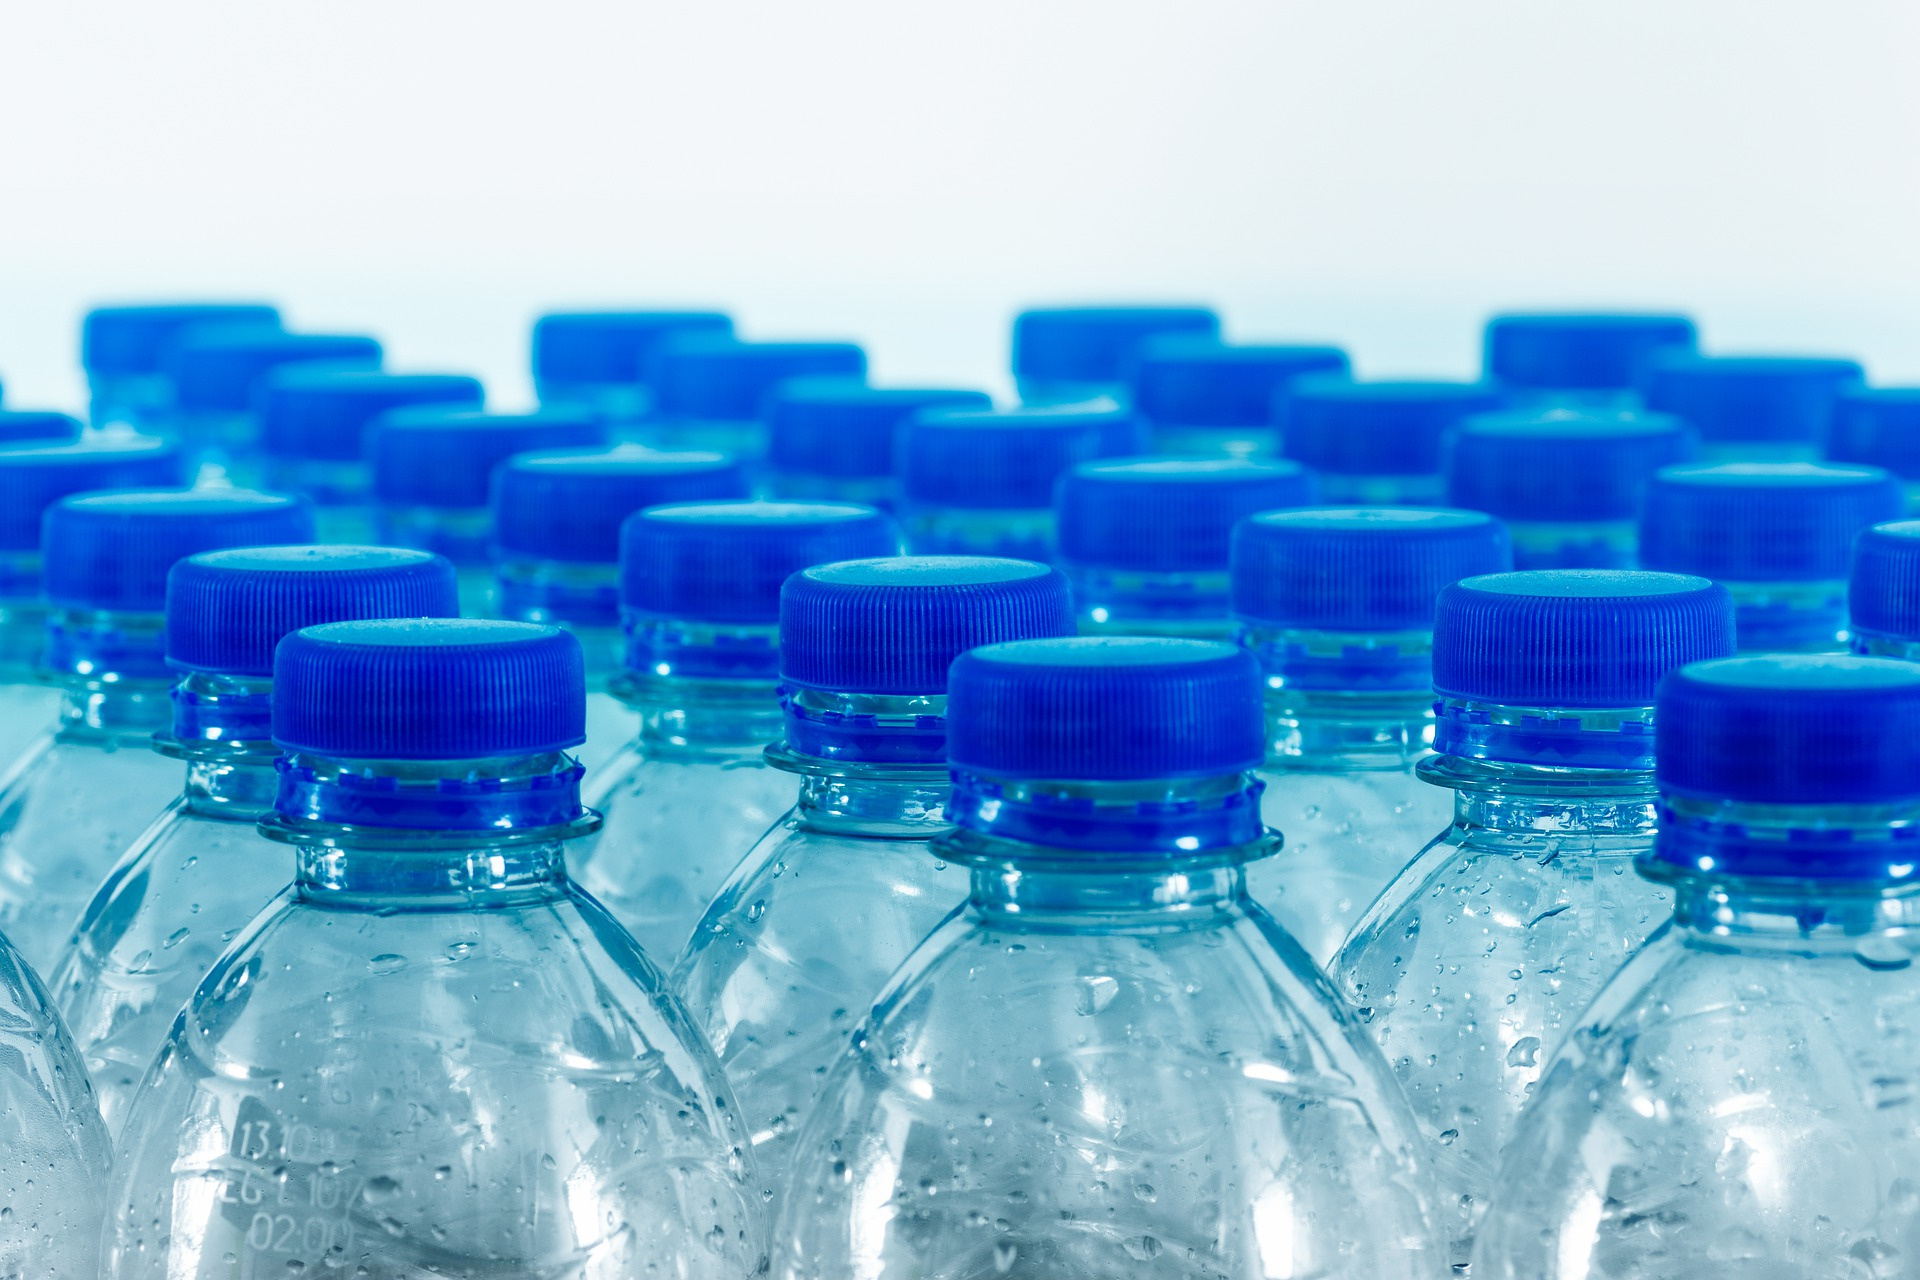 INDEPENDENT IMPORTER AND WHOLESALER OF WATER AND PAPER TISSUE PRODUCTS ACROSS THE UK